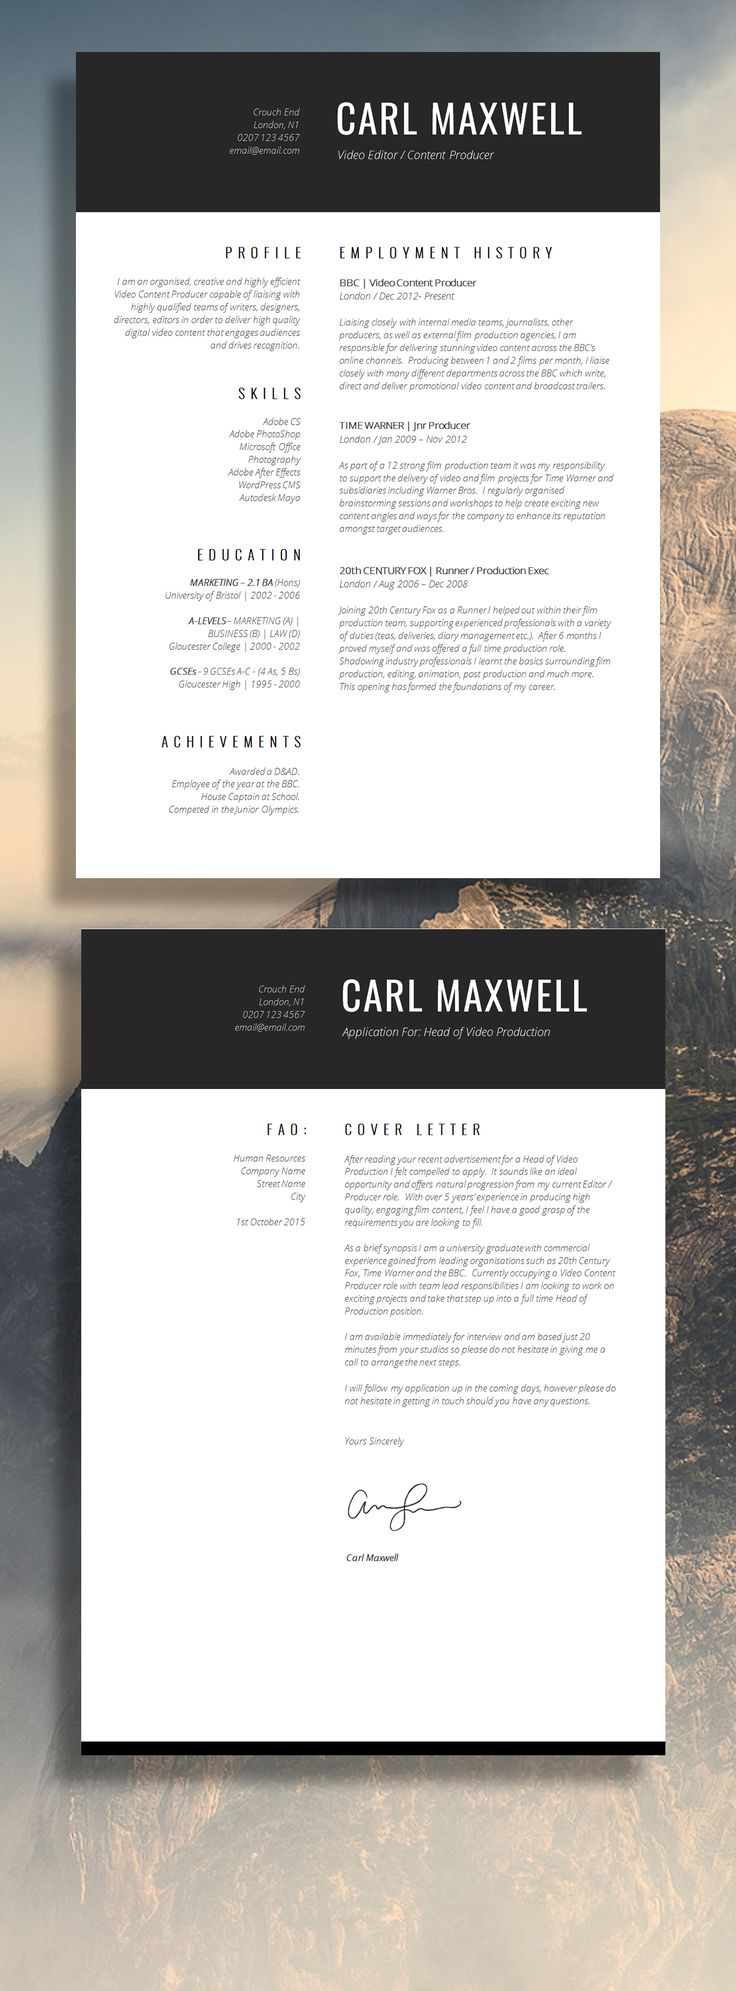 Super Slick Single Page CV - Very Neat! #Resume #CV #NotYourAverageCV